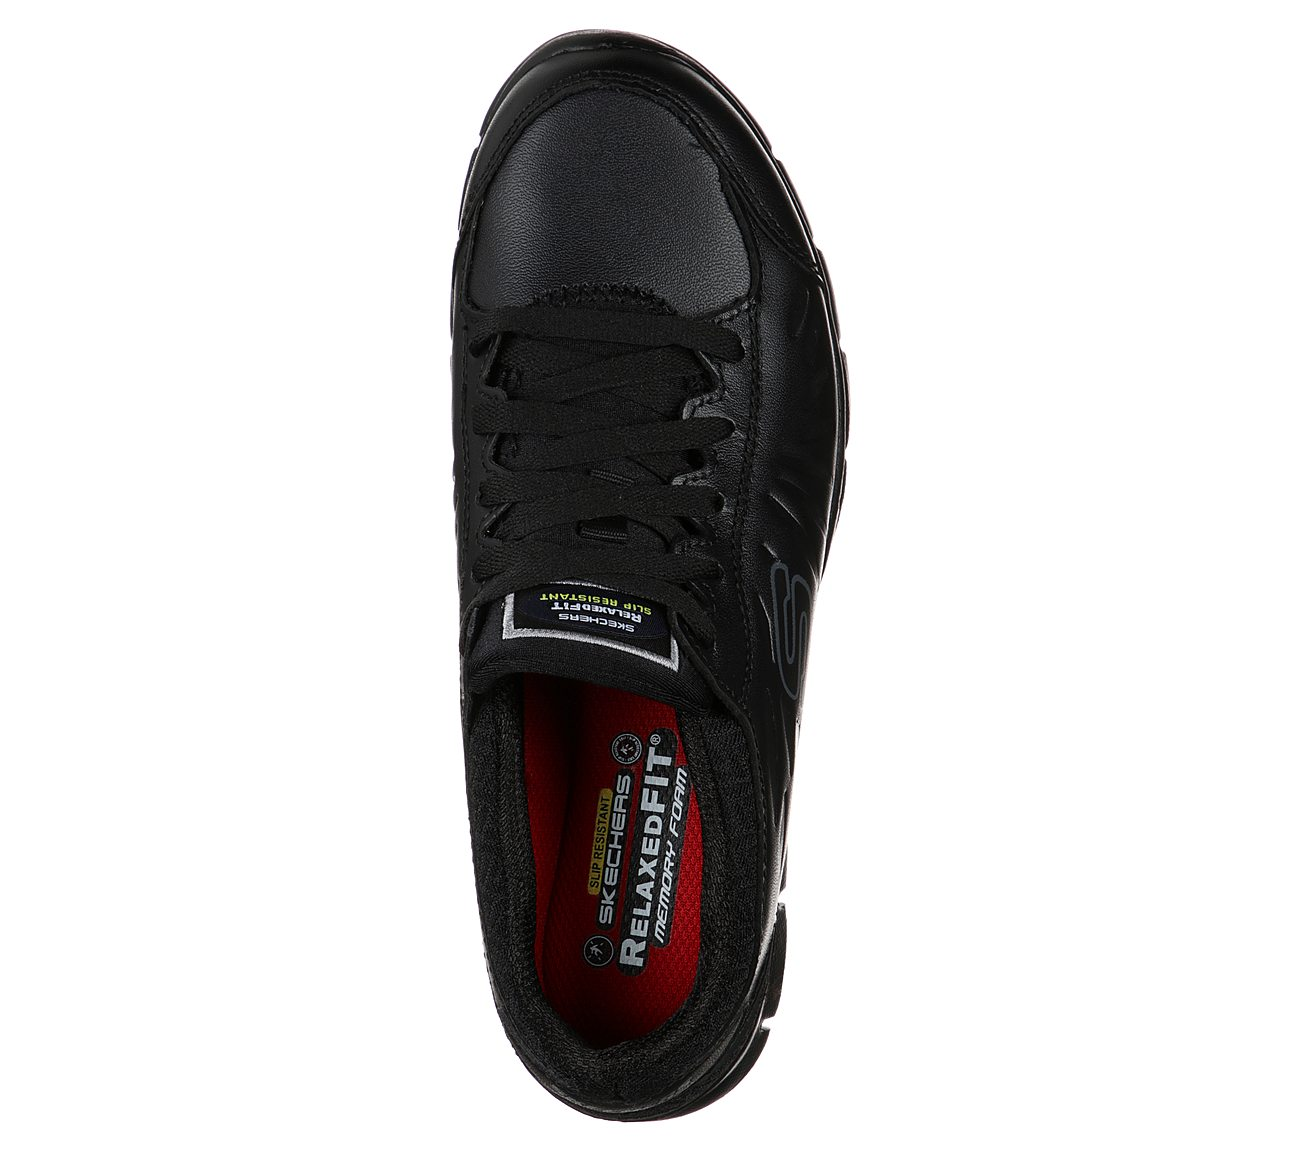 6f97c73f8207 Buy SKECHERS Work  Relaxed Fit - Eldred SR Work Shoes only  75.00